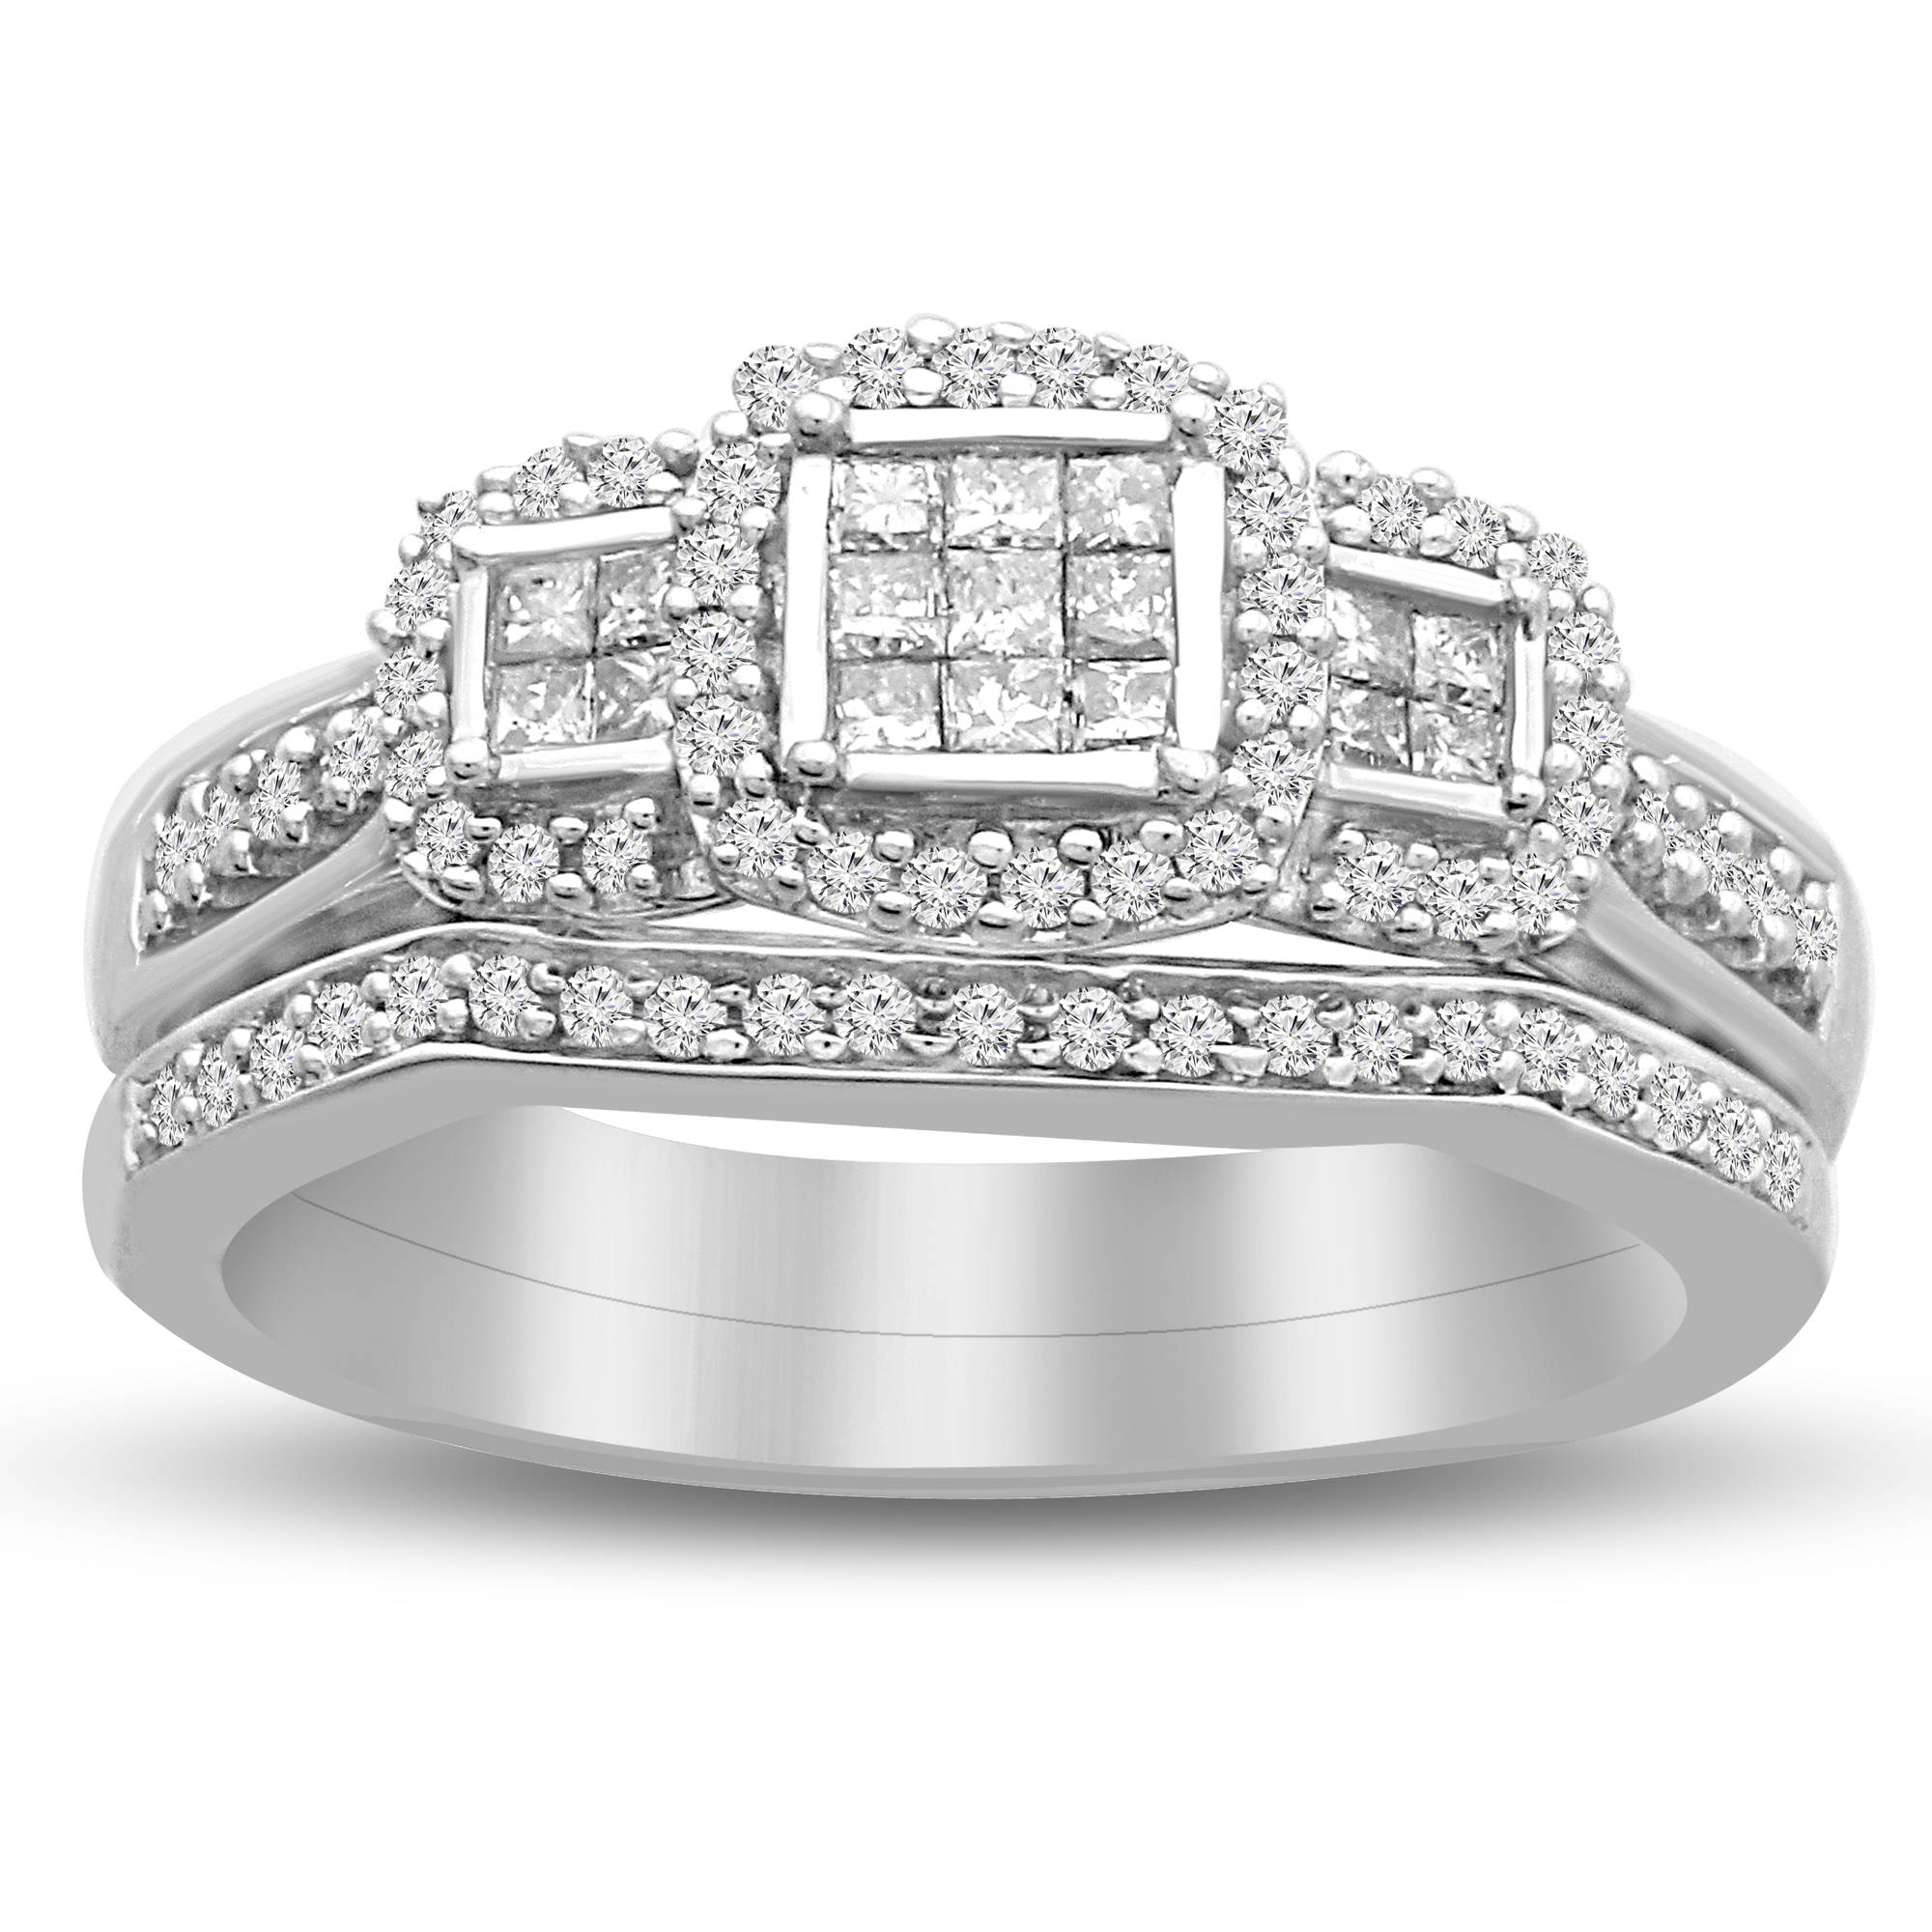 t wedding carat engagement rings w quad diamond com forever ring platinaire always ip walmart